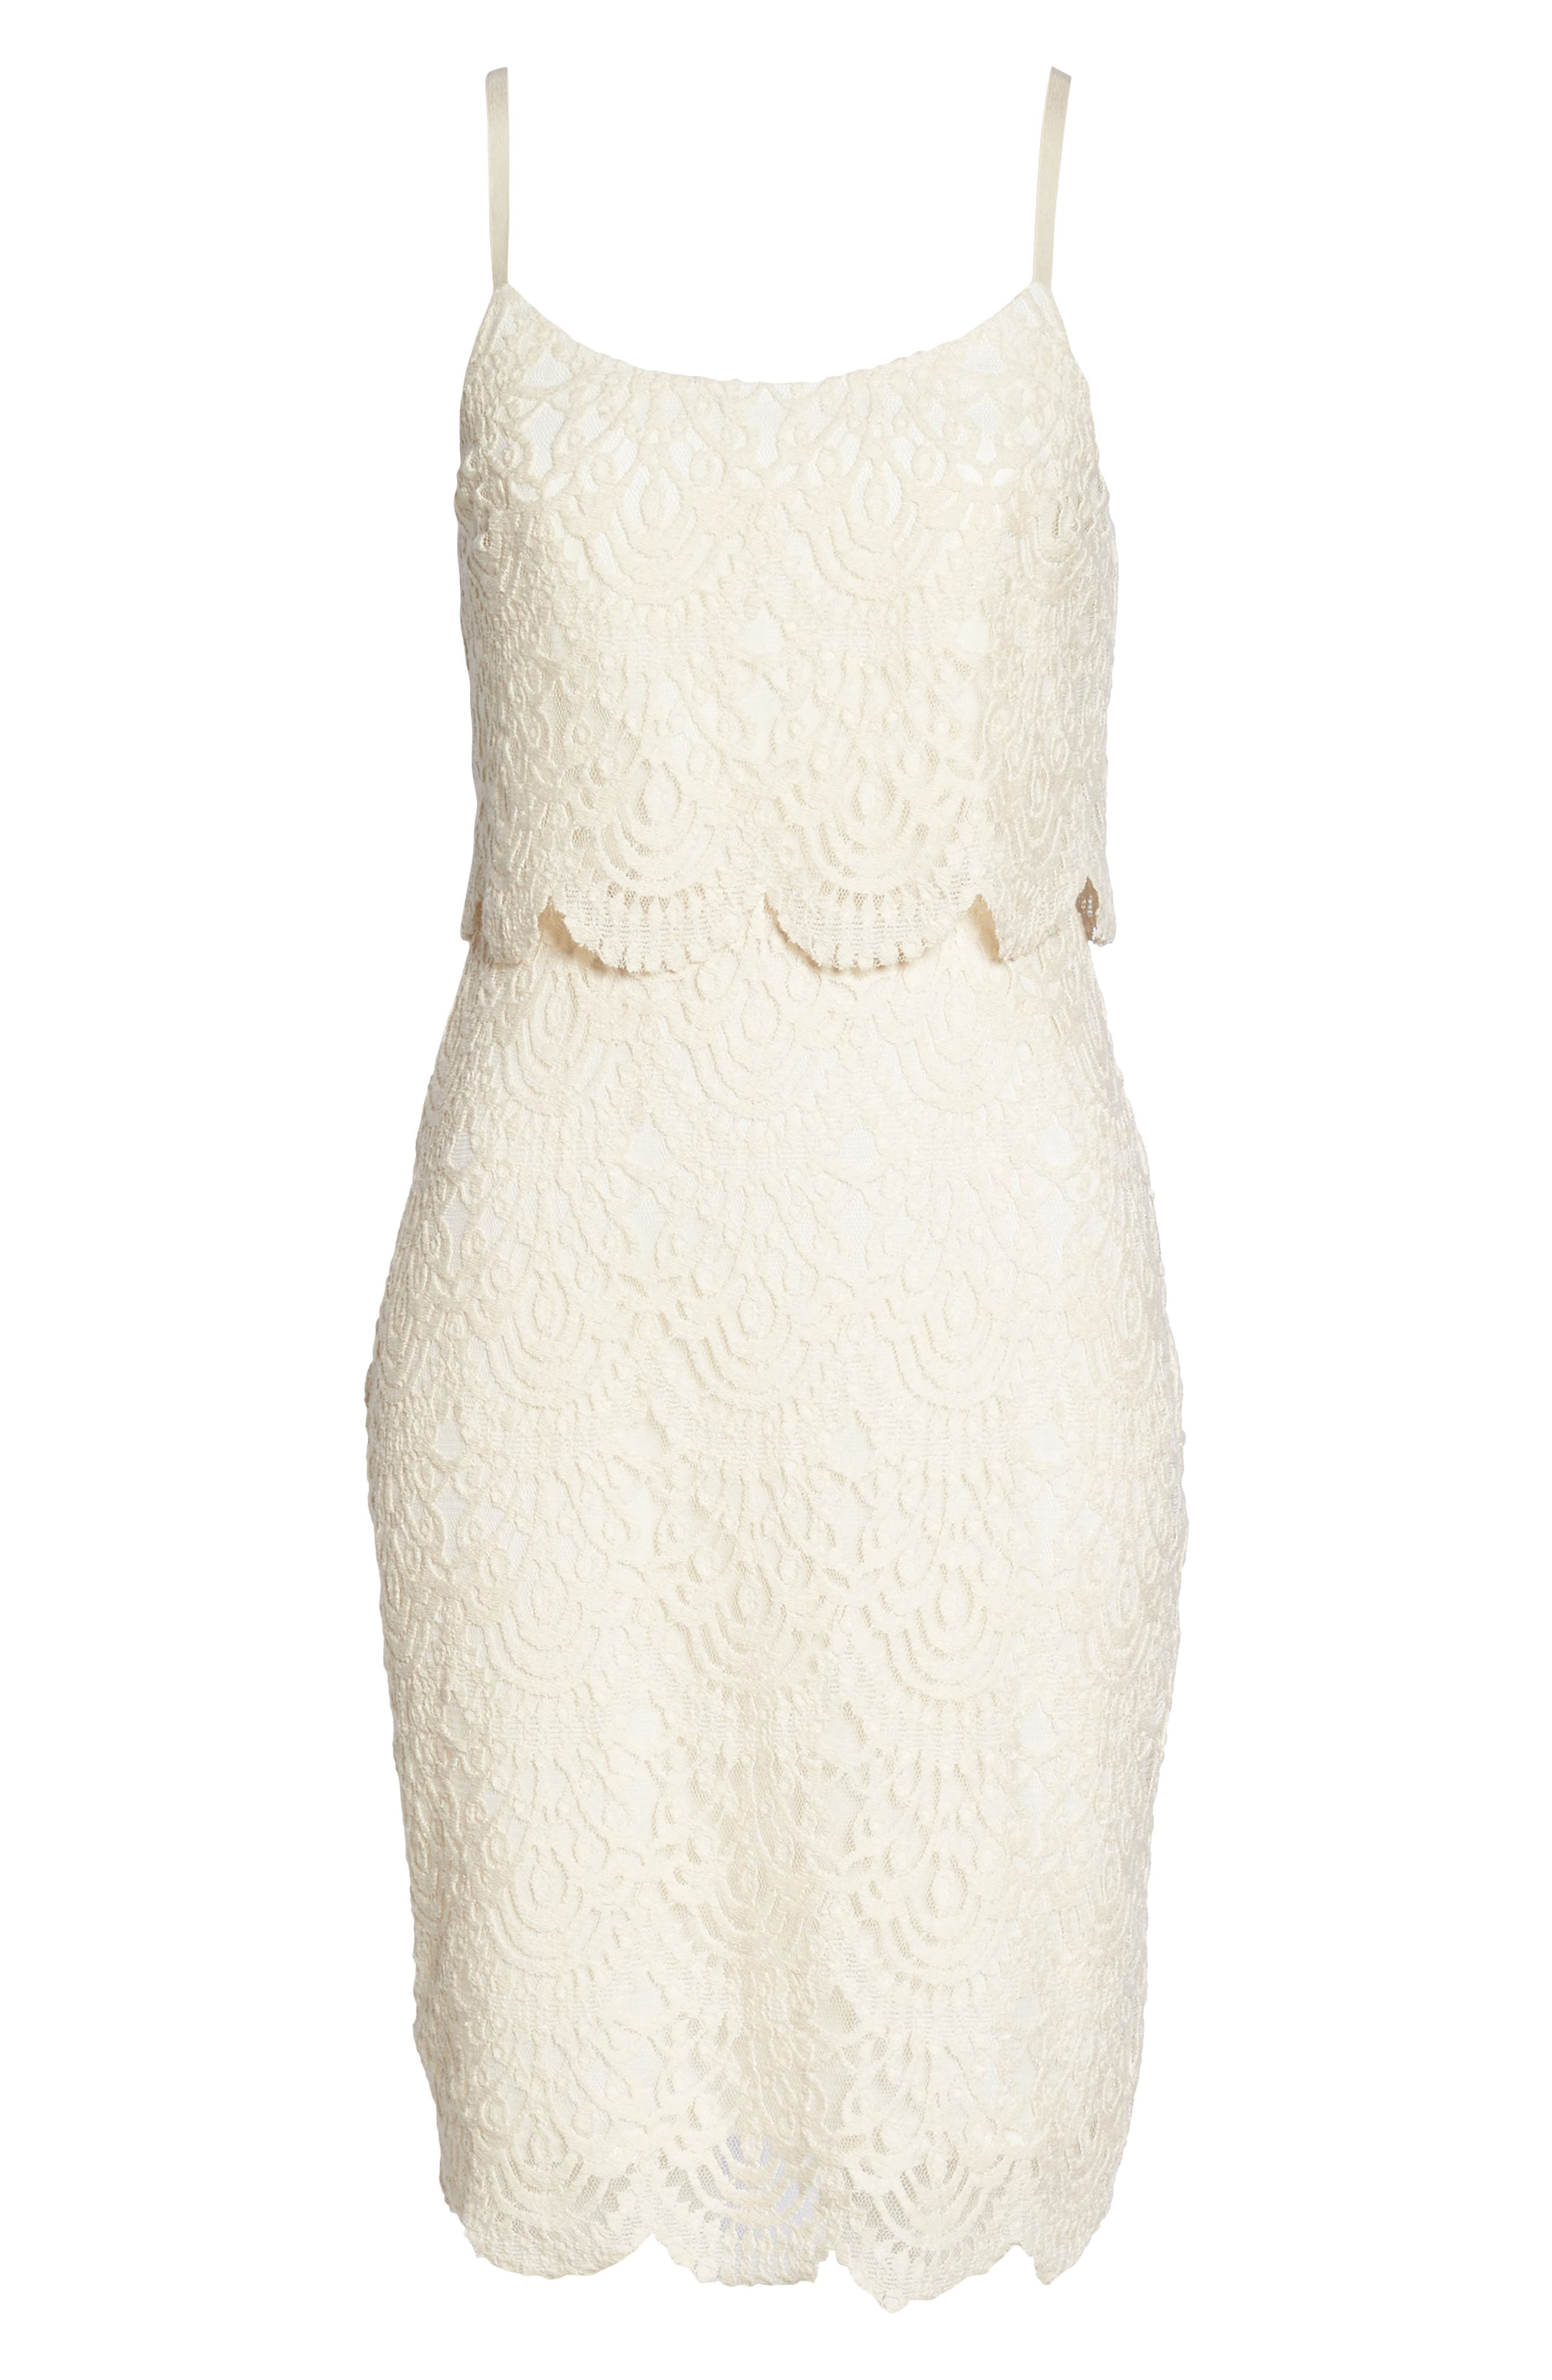 Barnsdall Afternoon Tiered Lace Dress,                             Alternate thumbnail 6, color,                             Vintage Lace